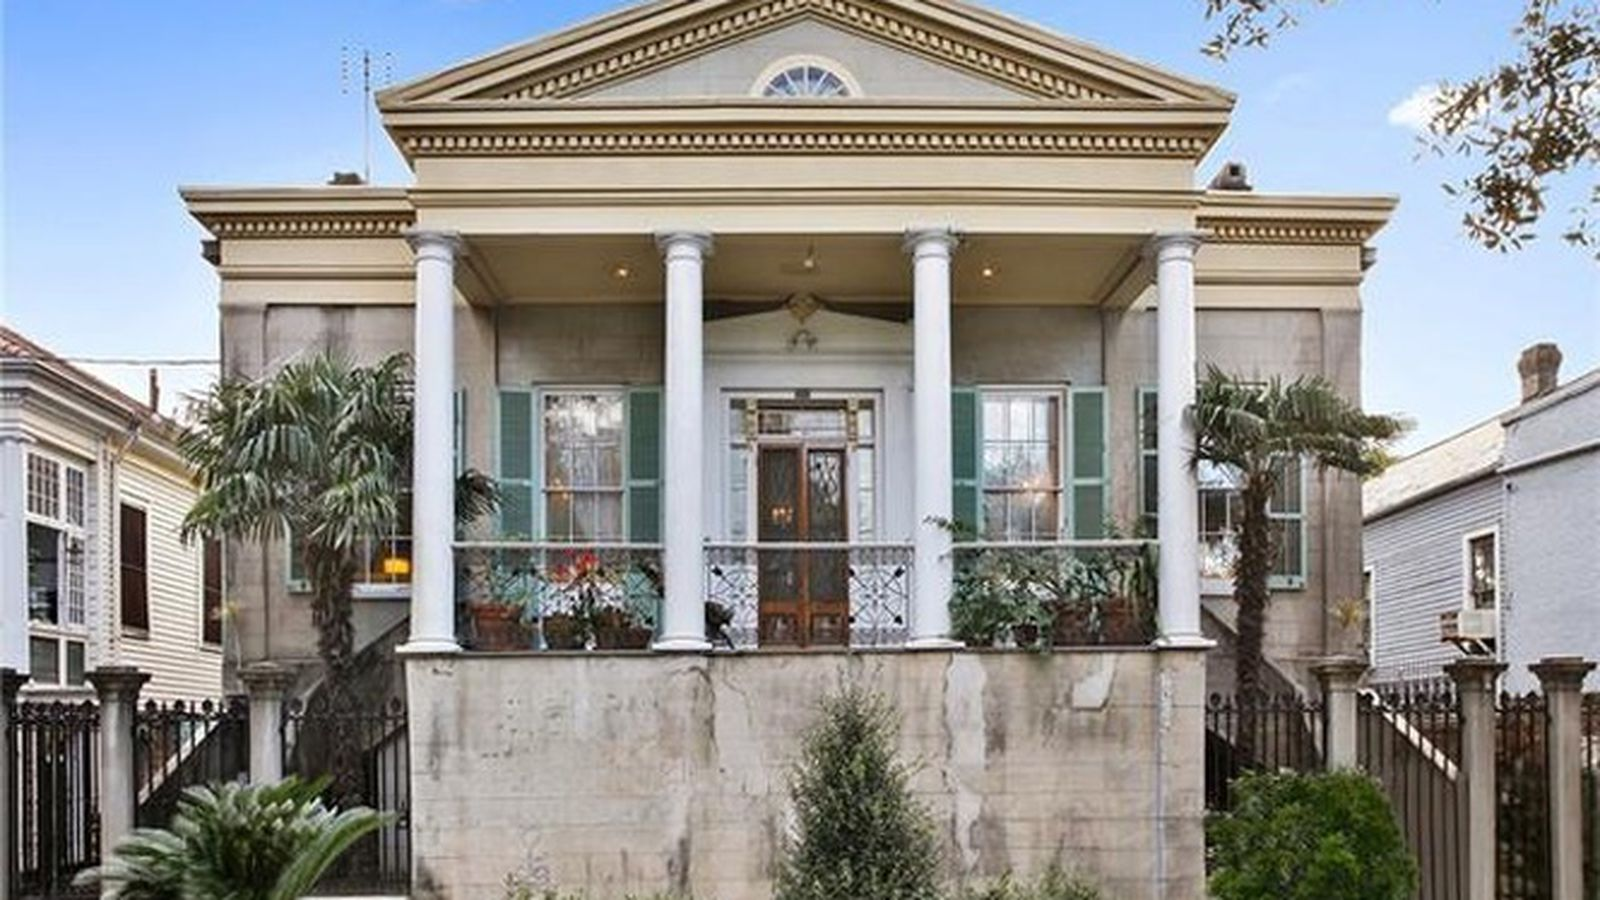 The 10 most expensive homes for sale in new orleans for Most expensive home for sale